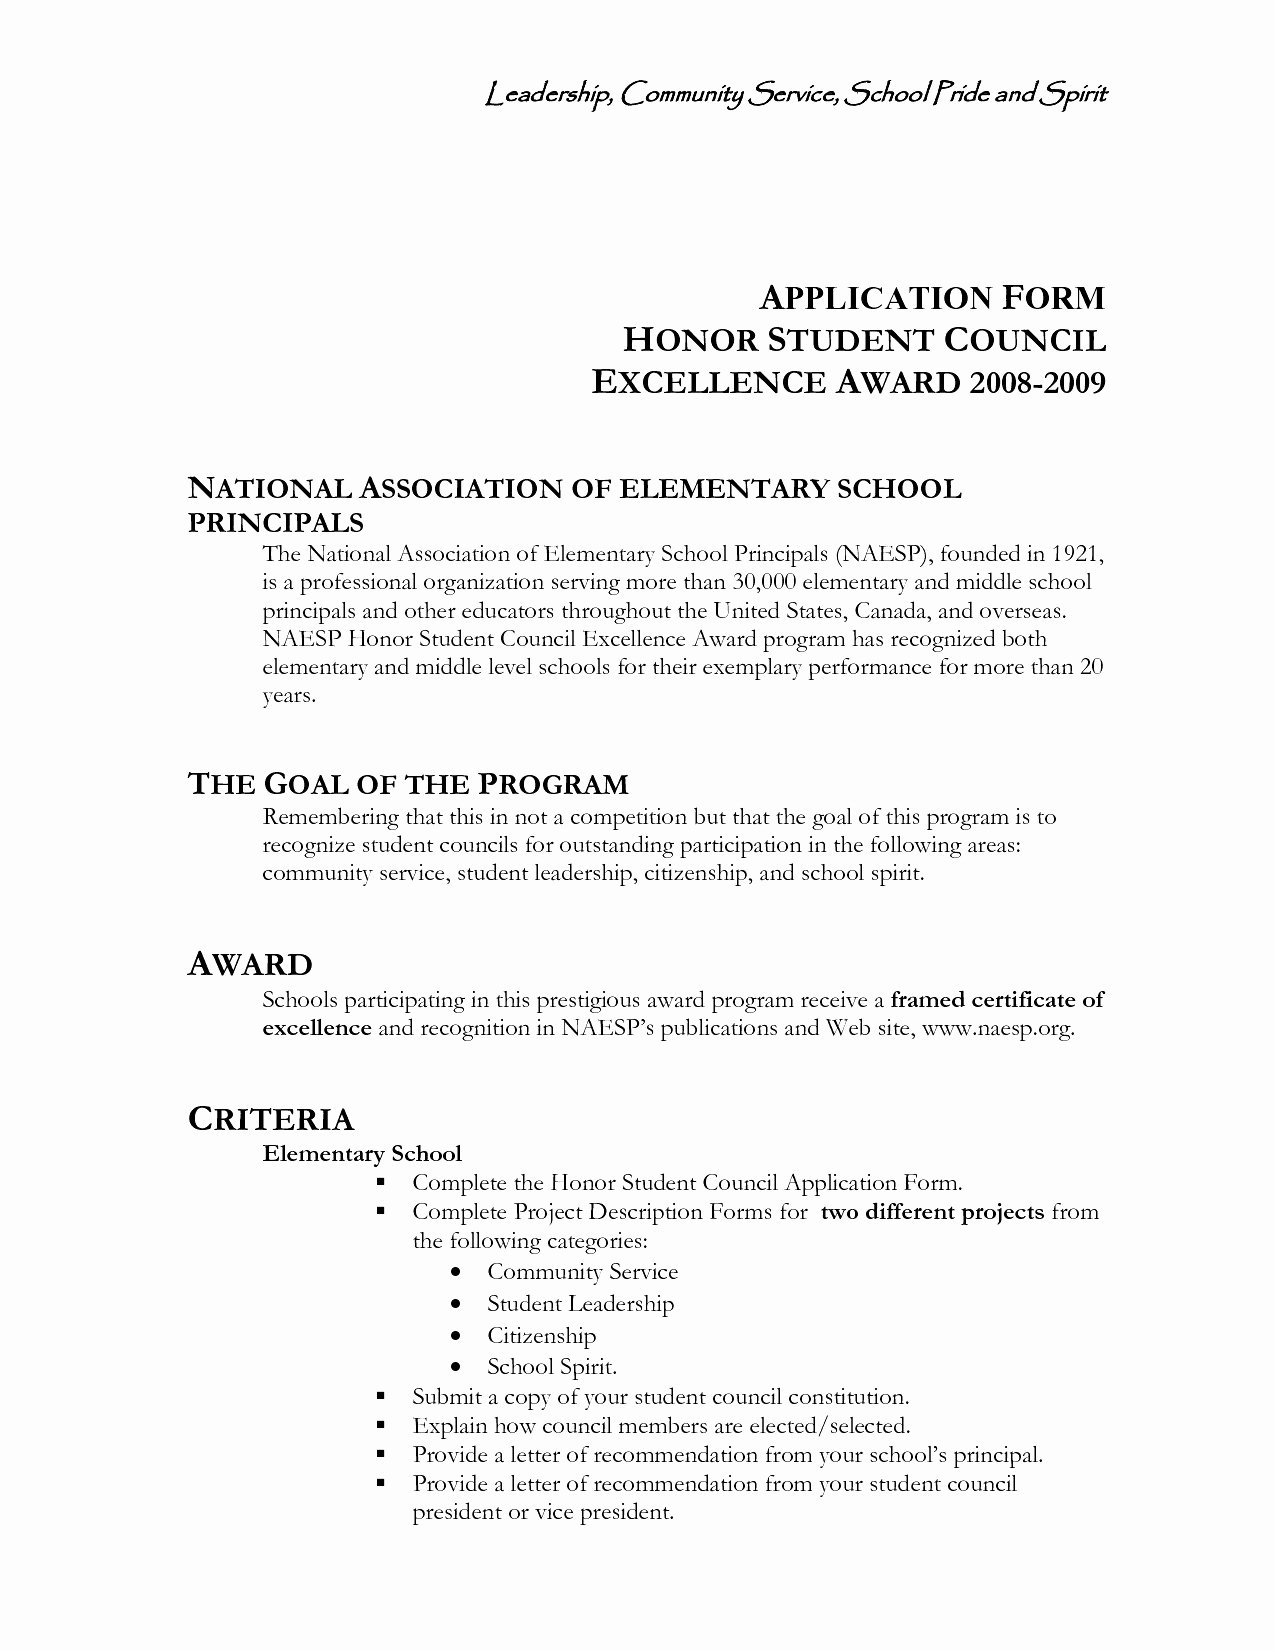 Letter Of Recommendation for Citizenship Elegant Letter Of Re Mendation for Citizenship Us – Bushveld Lab